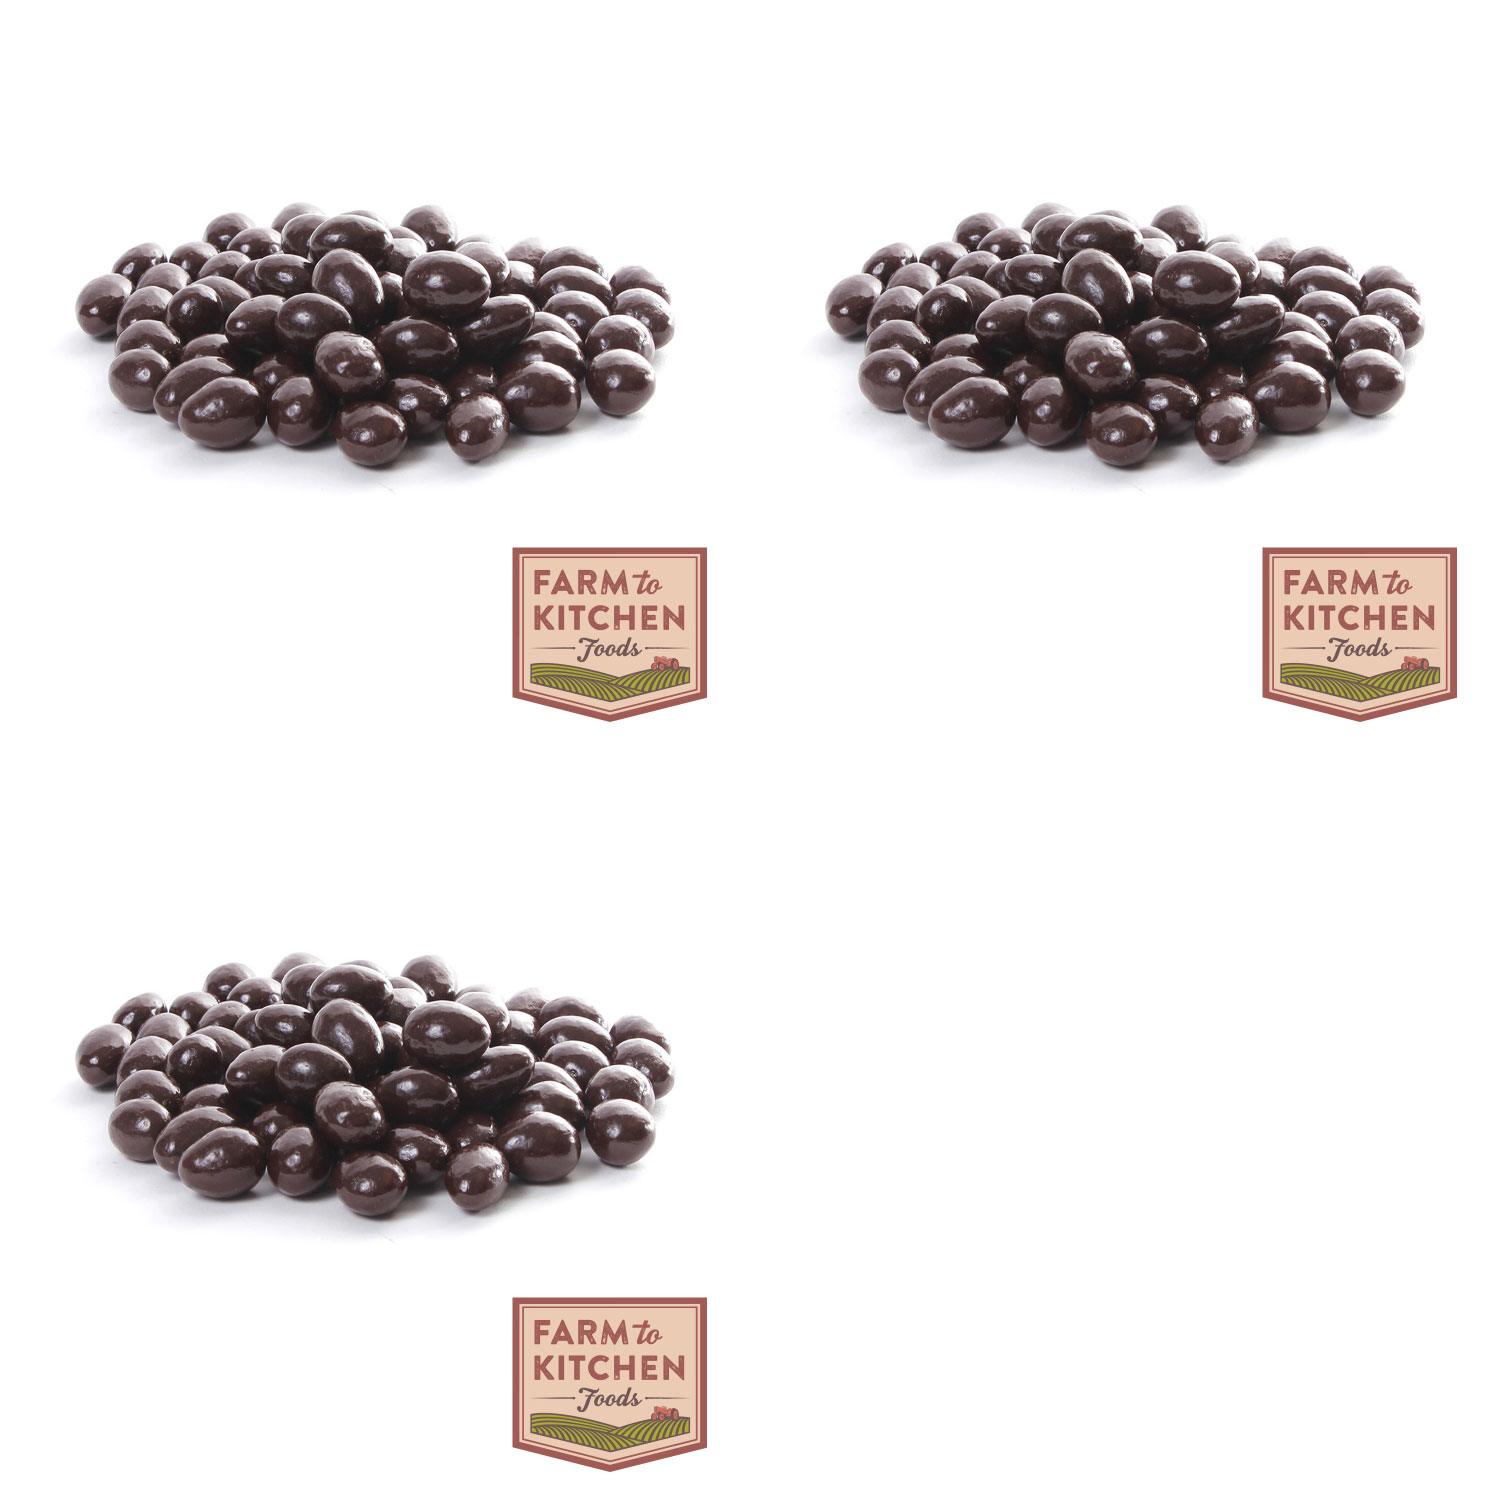 Farm to Kitchen Foods Chocolate Covered Almonds - Buy 2 Get 1 Free